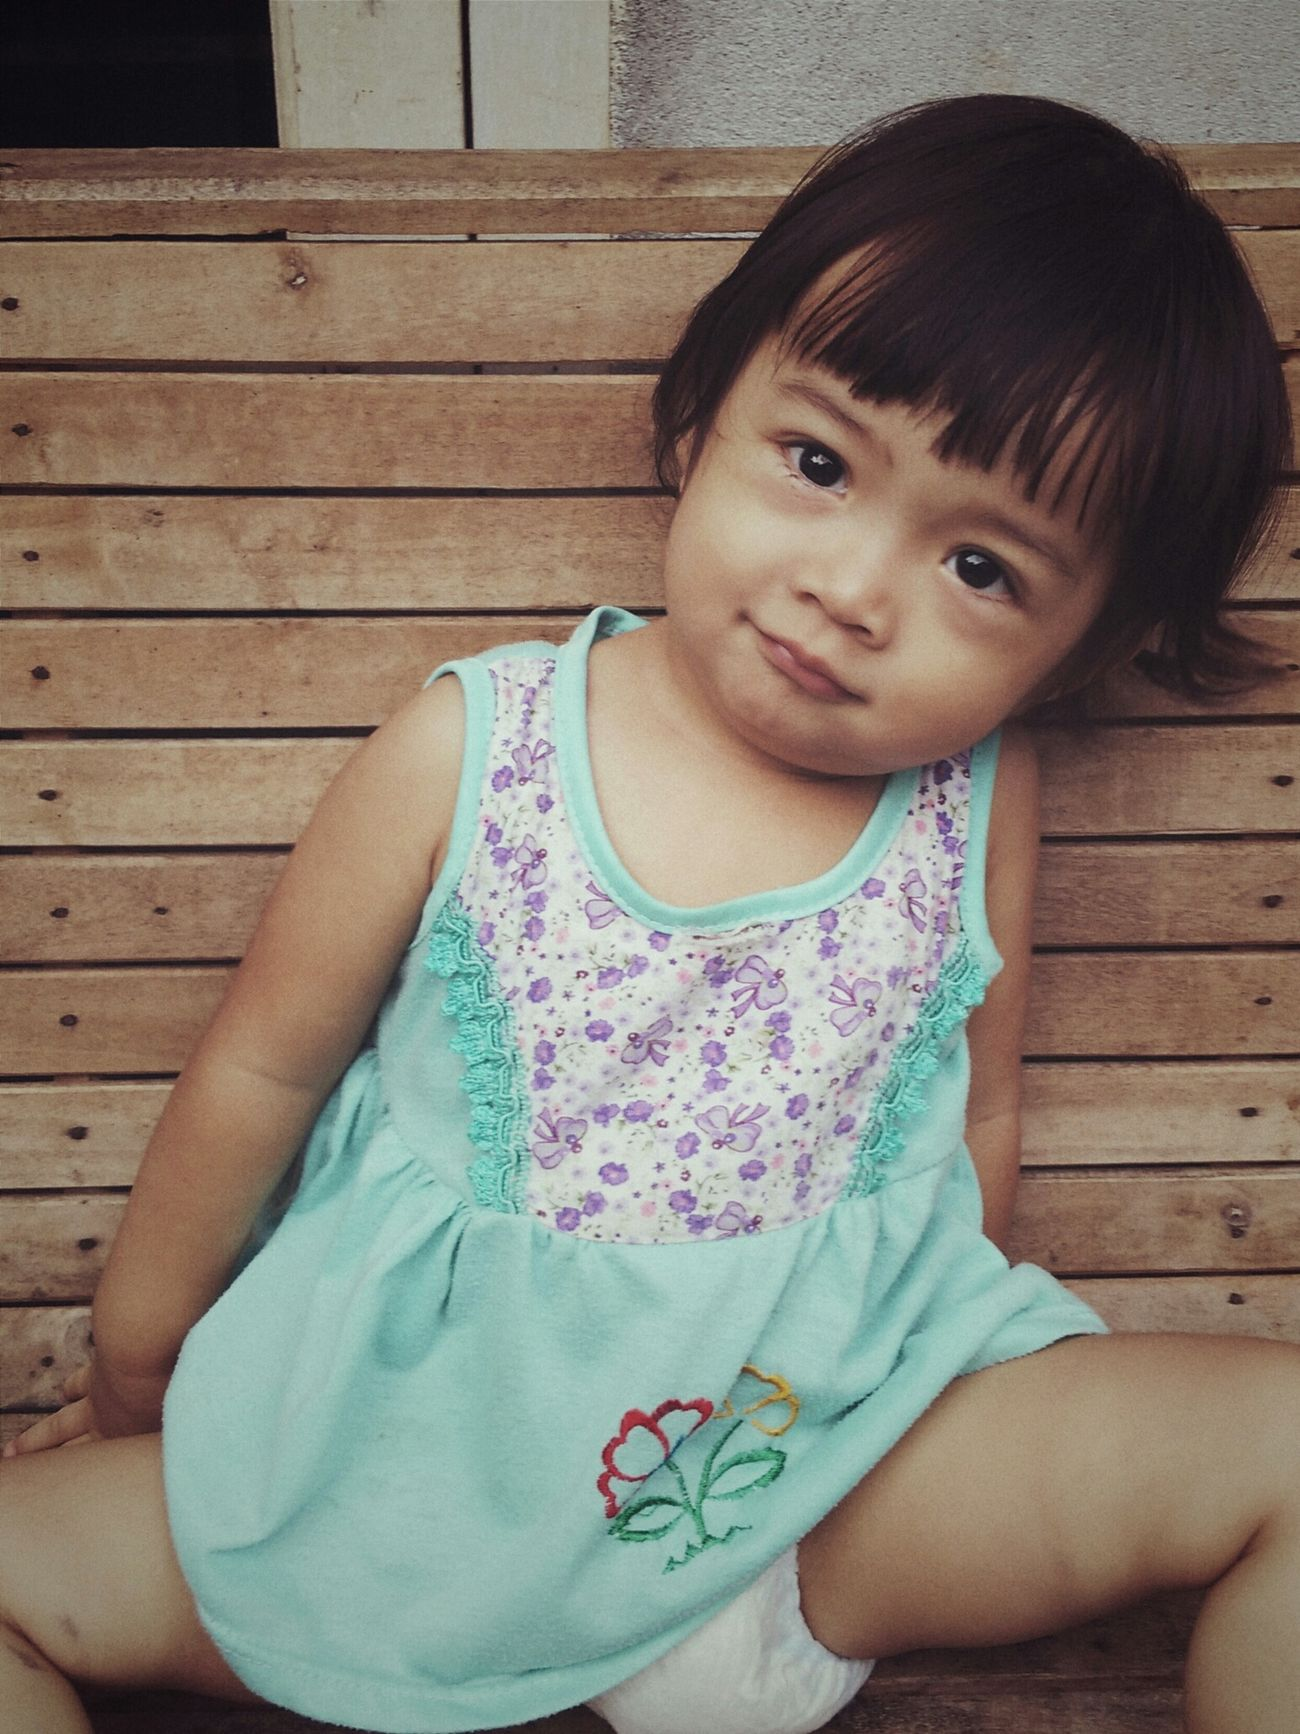 be better | Grain Grainy Grainy Images Portrait Taking Photos Eye4photography  Honesty Smile Kidsphotography Hello World Portraits Earthtones Asian  Asian Children Everyday Emotion